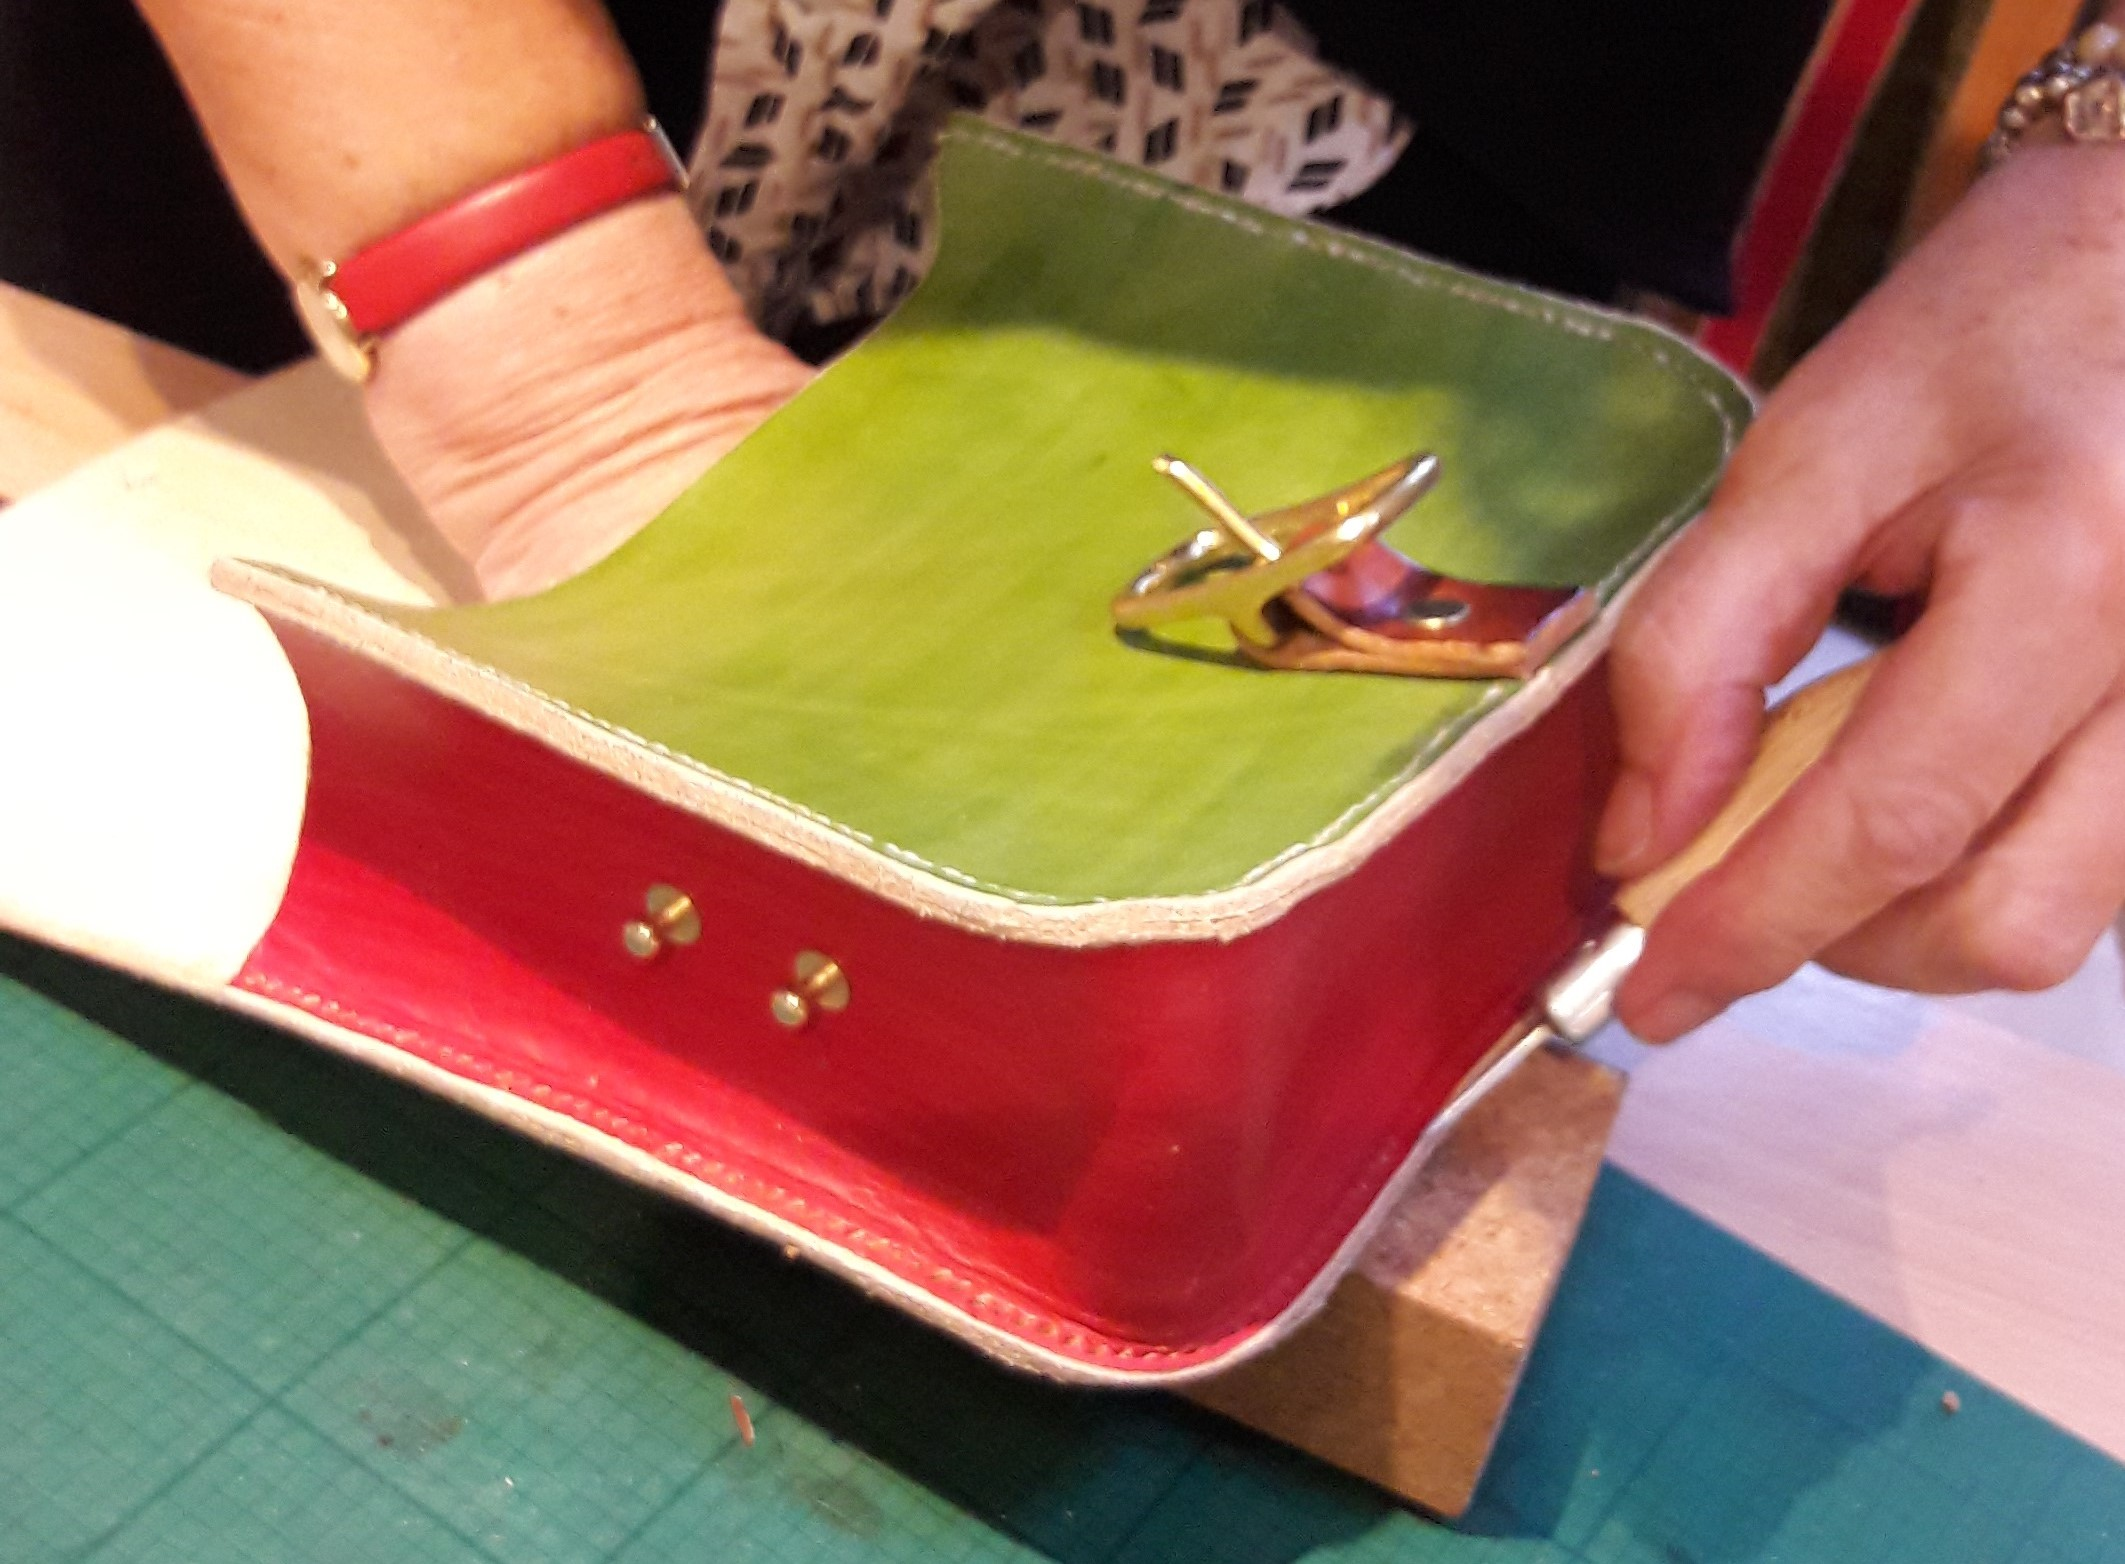 A Hand Stitched Leather Bag in a Day with Ruth Pullan